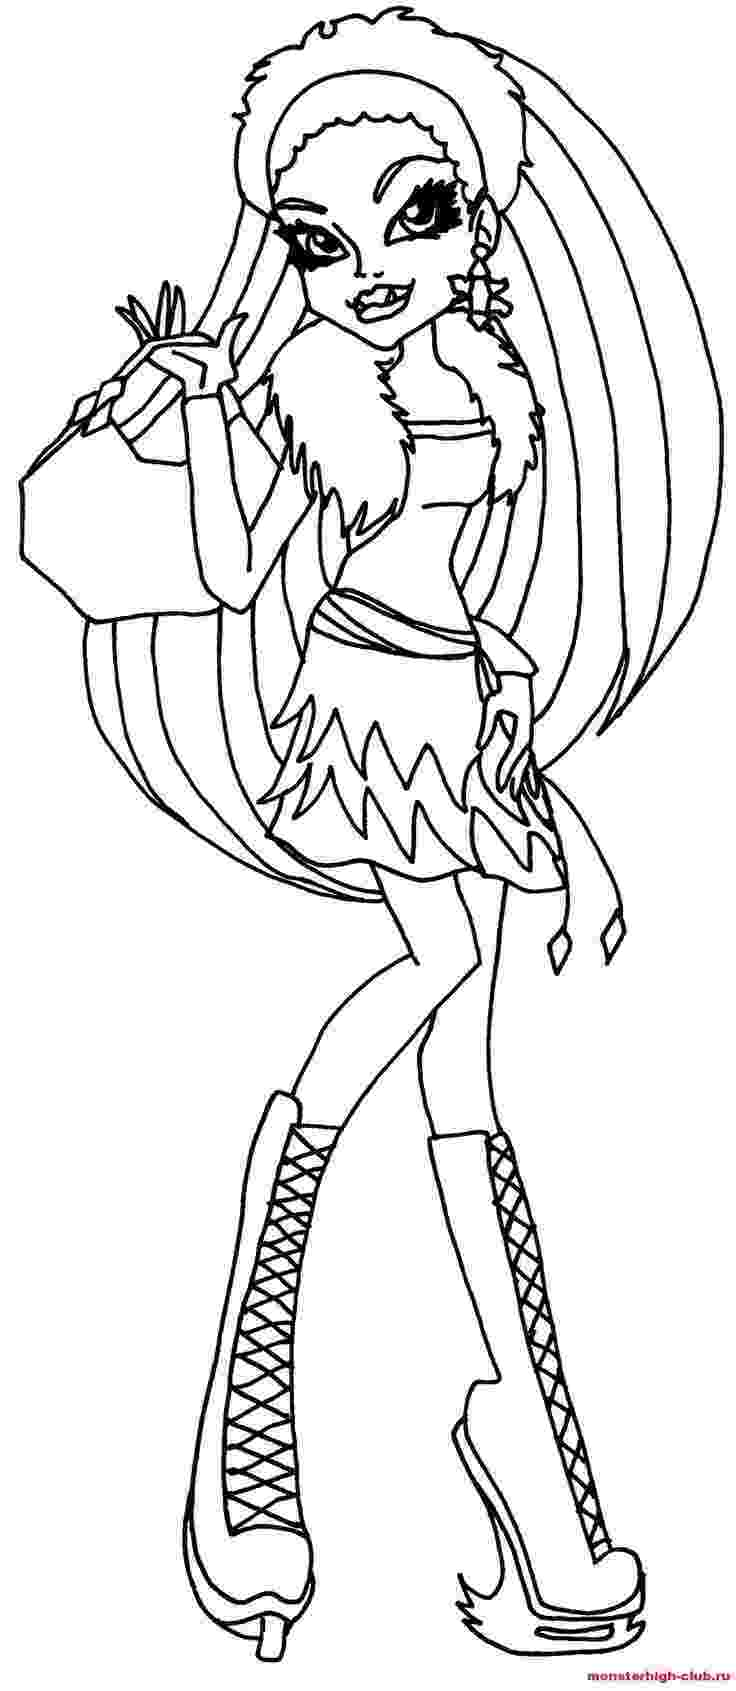 coloring pages for monster high print monster high coloring pages for free or download coloring monster for pages high